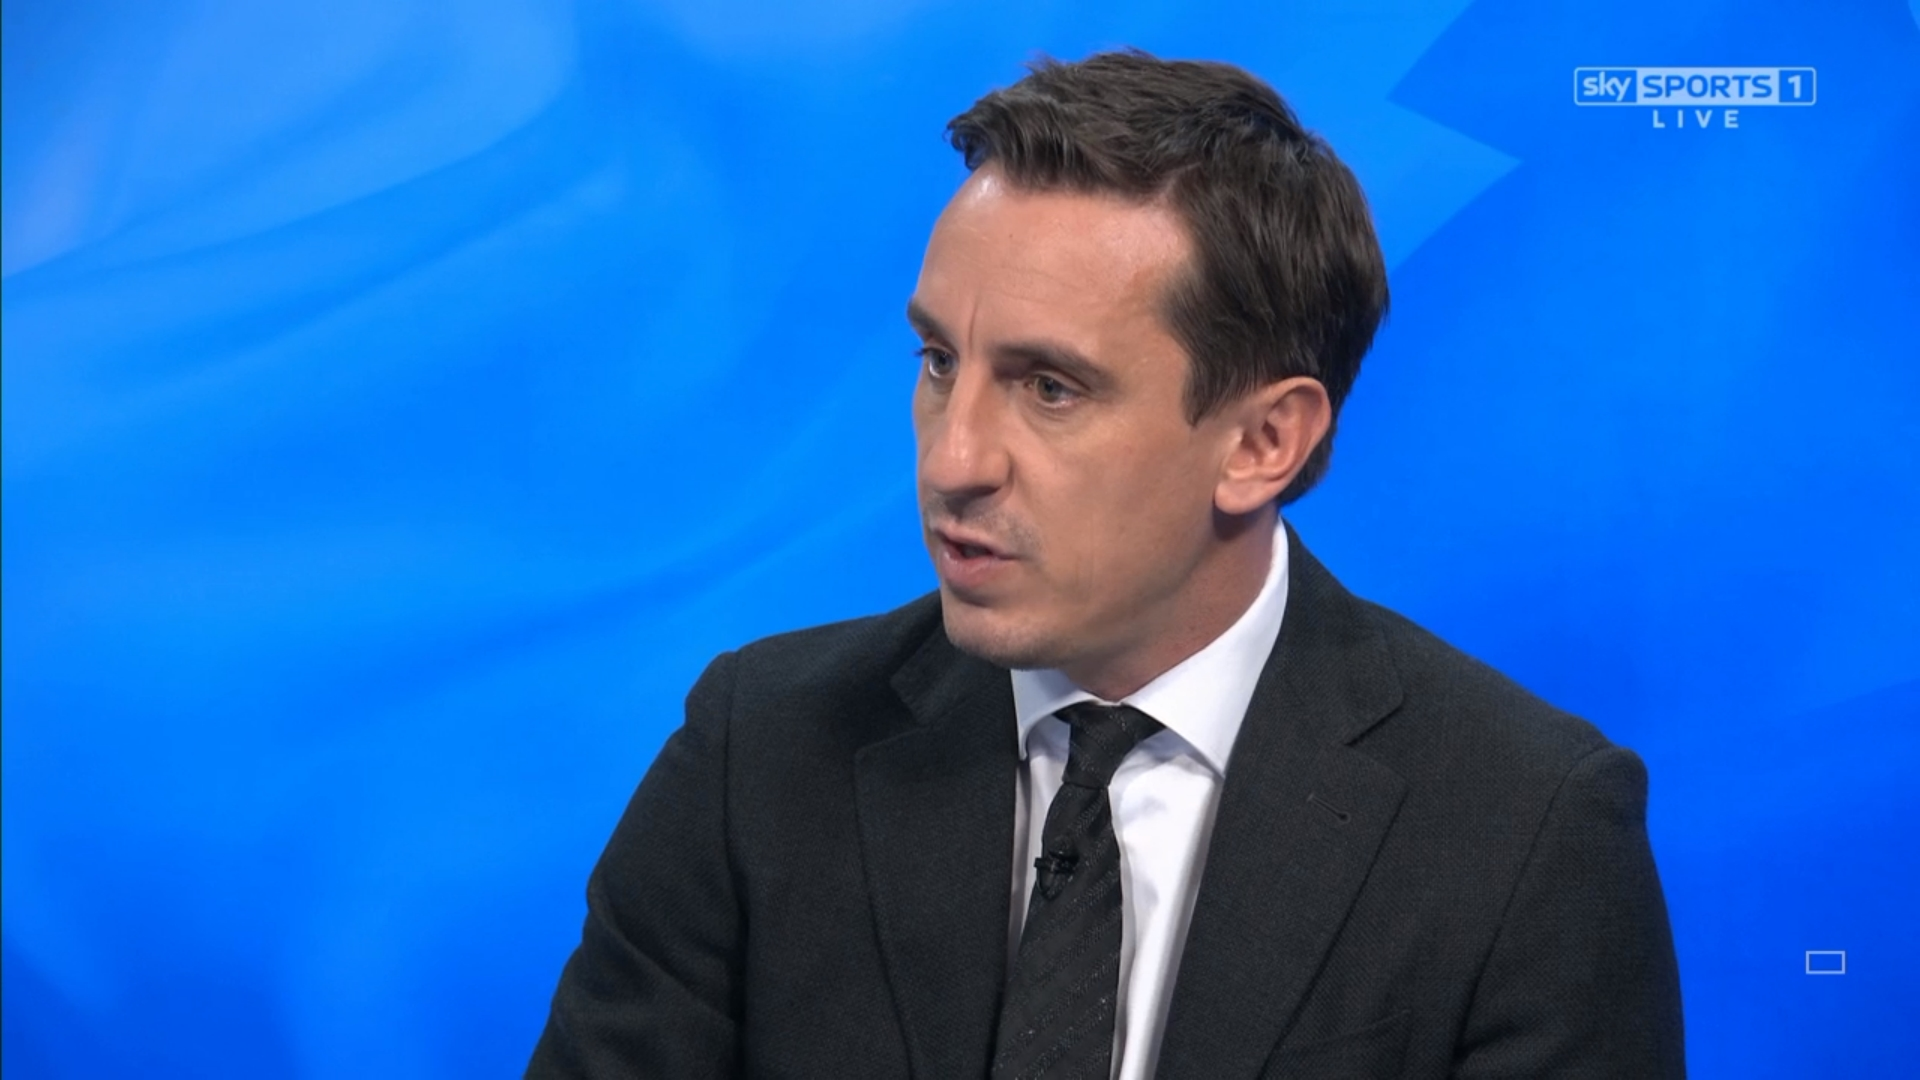 Gary Neville - Sky Sports Football Commentator (13)